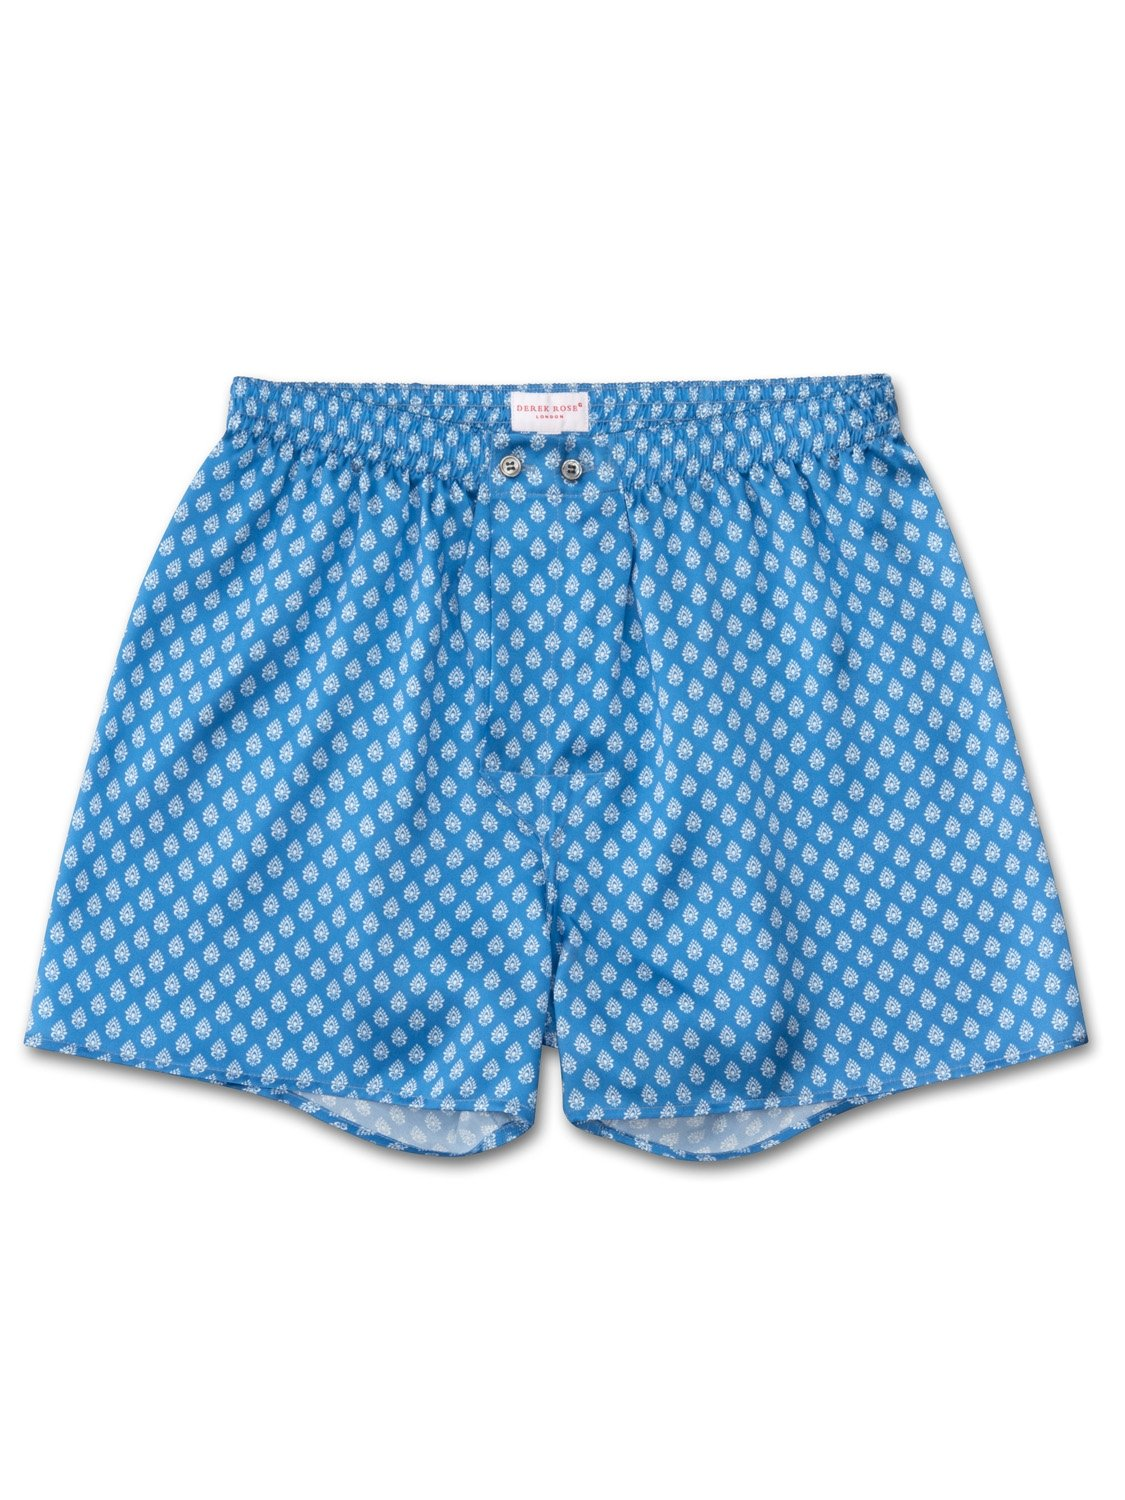 Men's Classic Fit Boxer Shorts Brindisi 20 Pure Silk Satin Blue